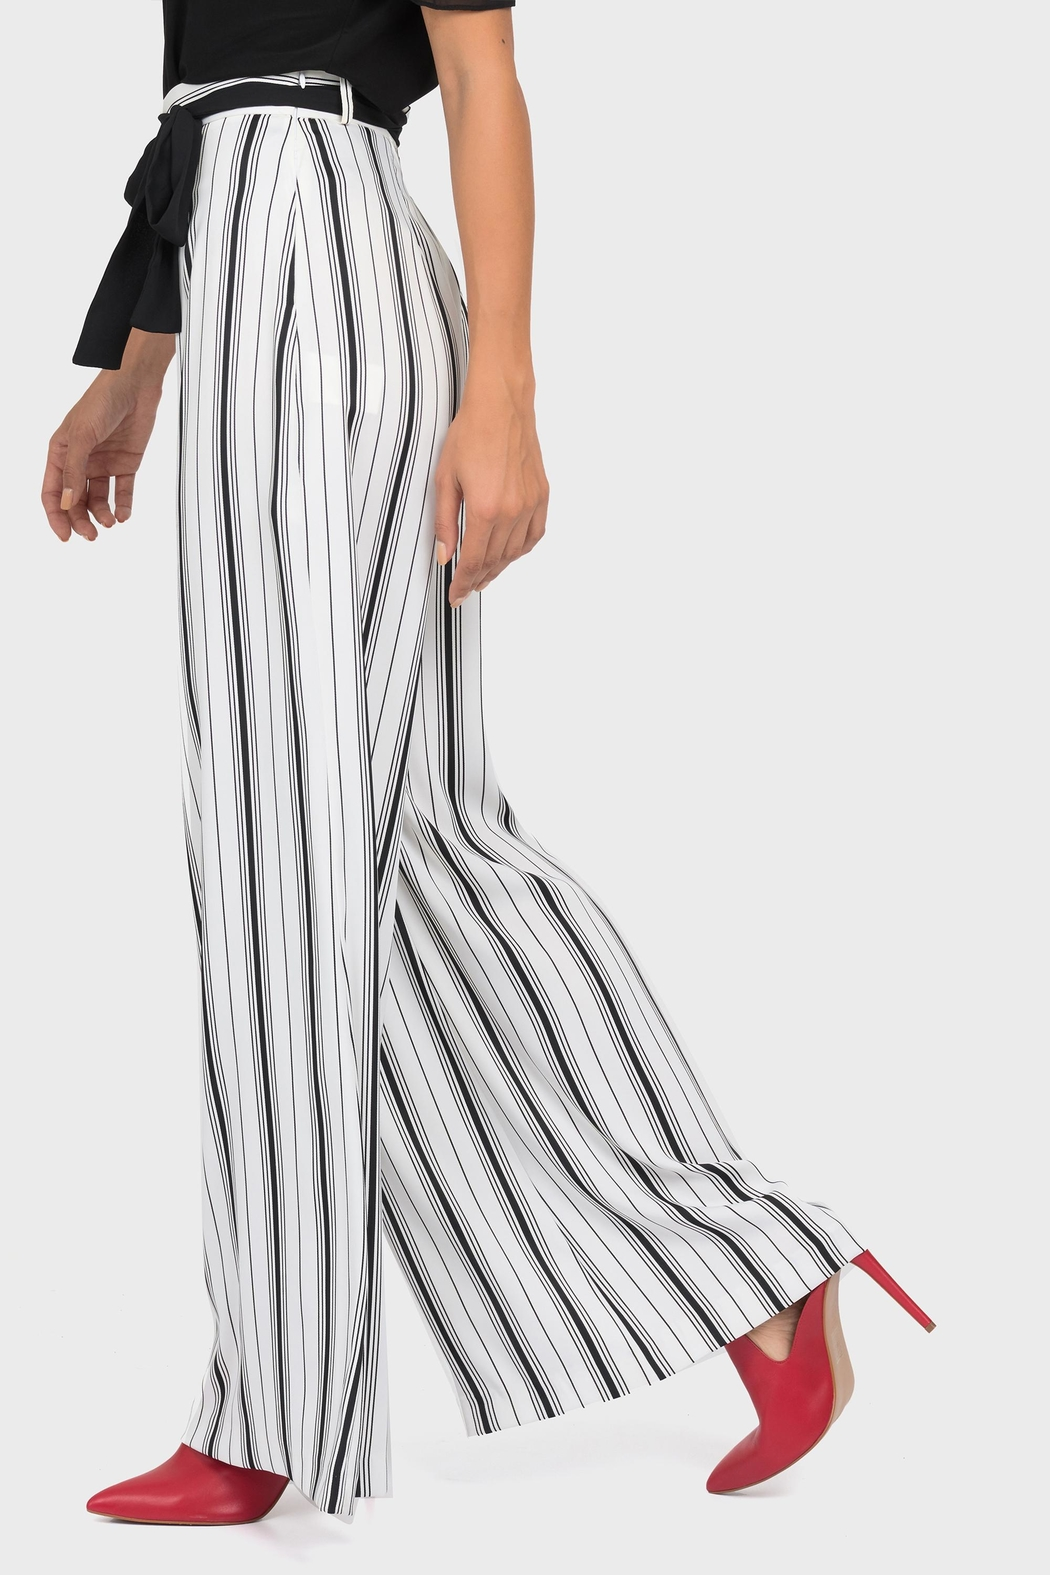 Joseph Ribkoff Belted Wide-Leg Pant - Front Full Image